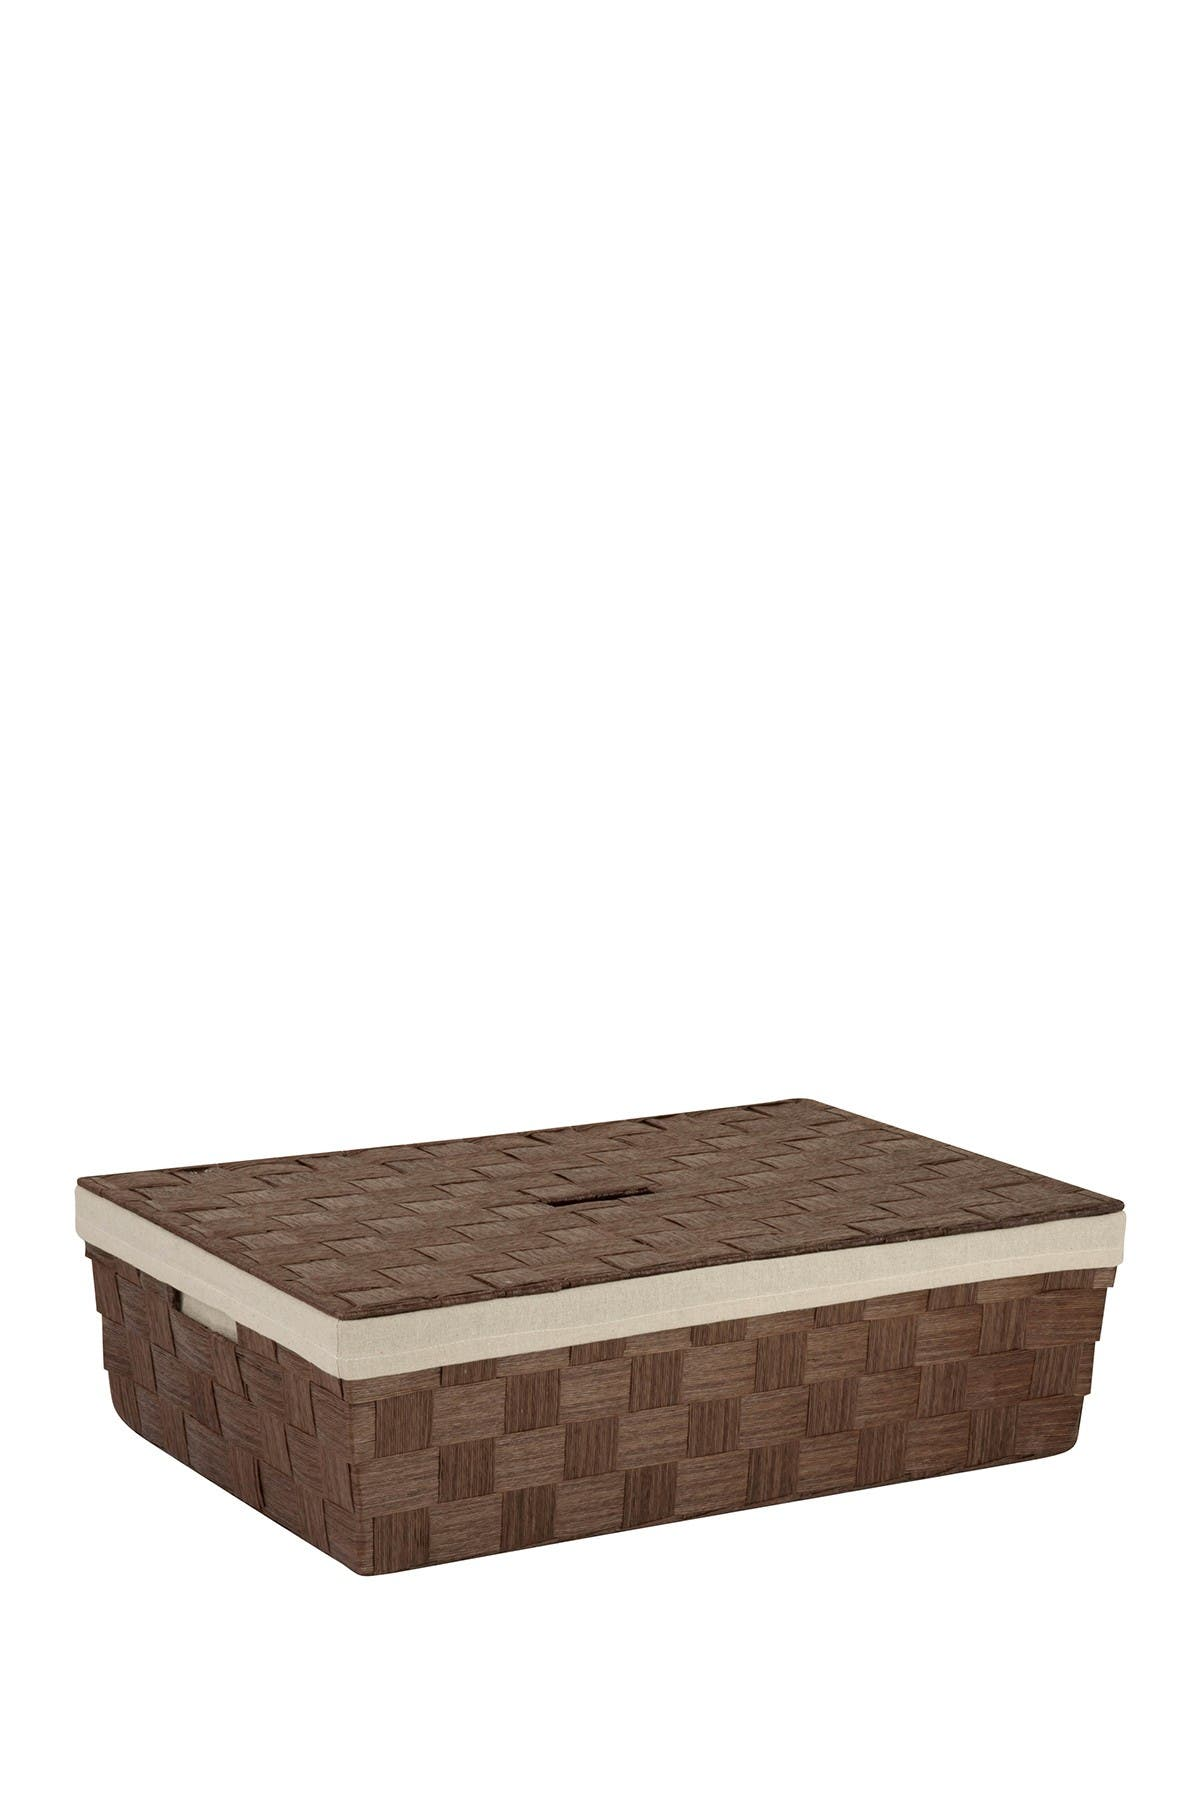 Image of Honey-Can-Do Underbed Brown Paper Rope Basket with Liner